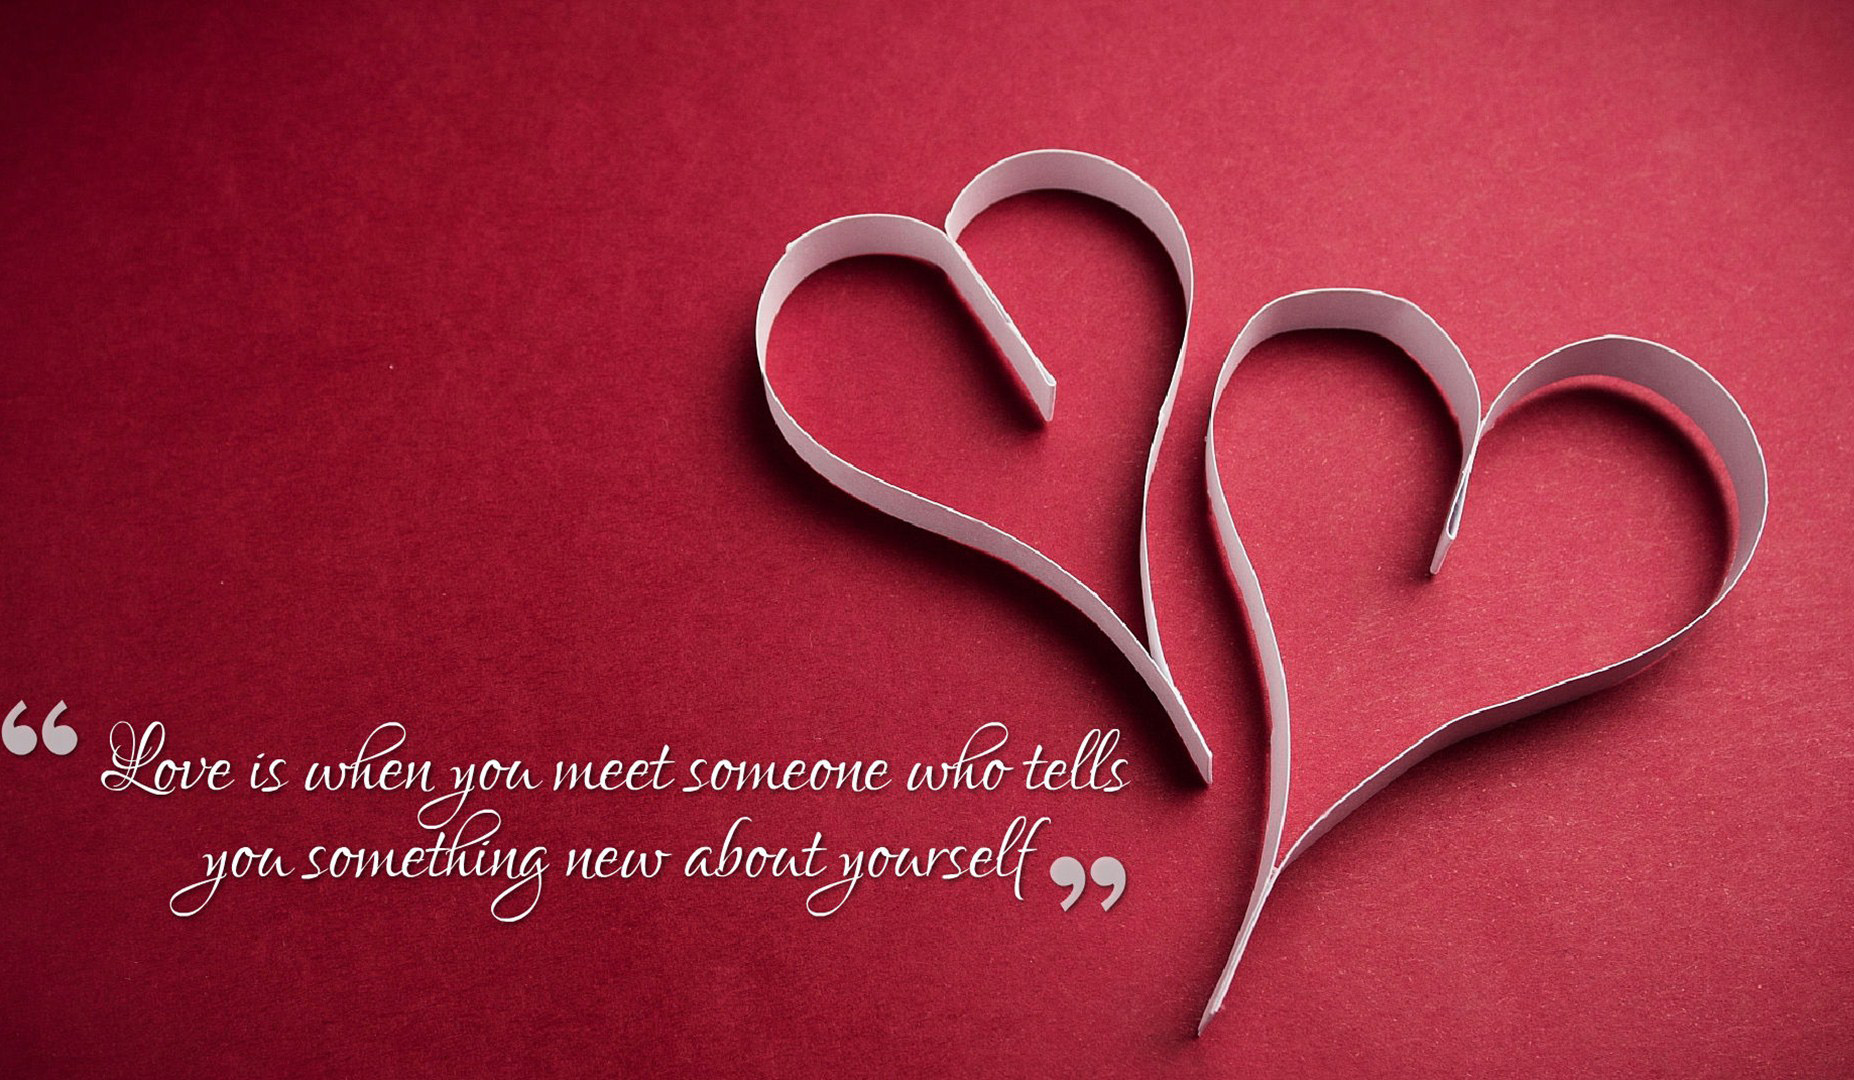 Love You Wallpaper For Girlfriend : Quotes About Love Wallpapers, Pictures, Images